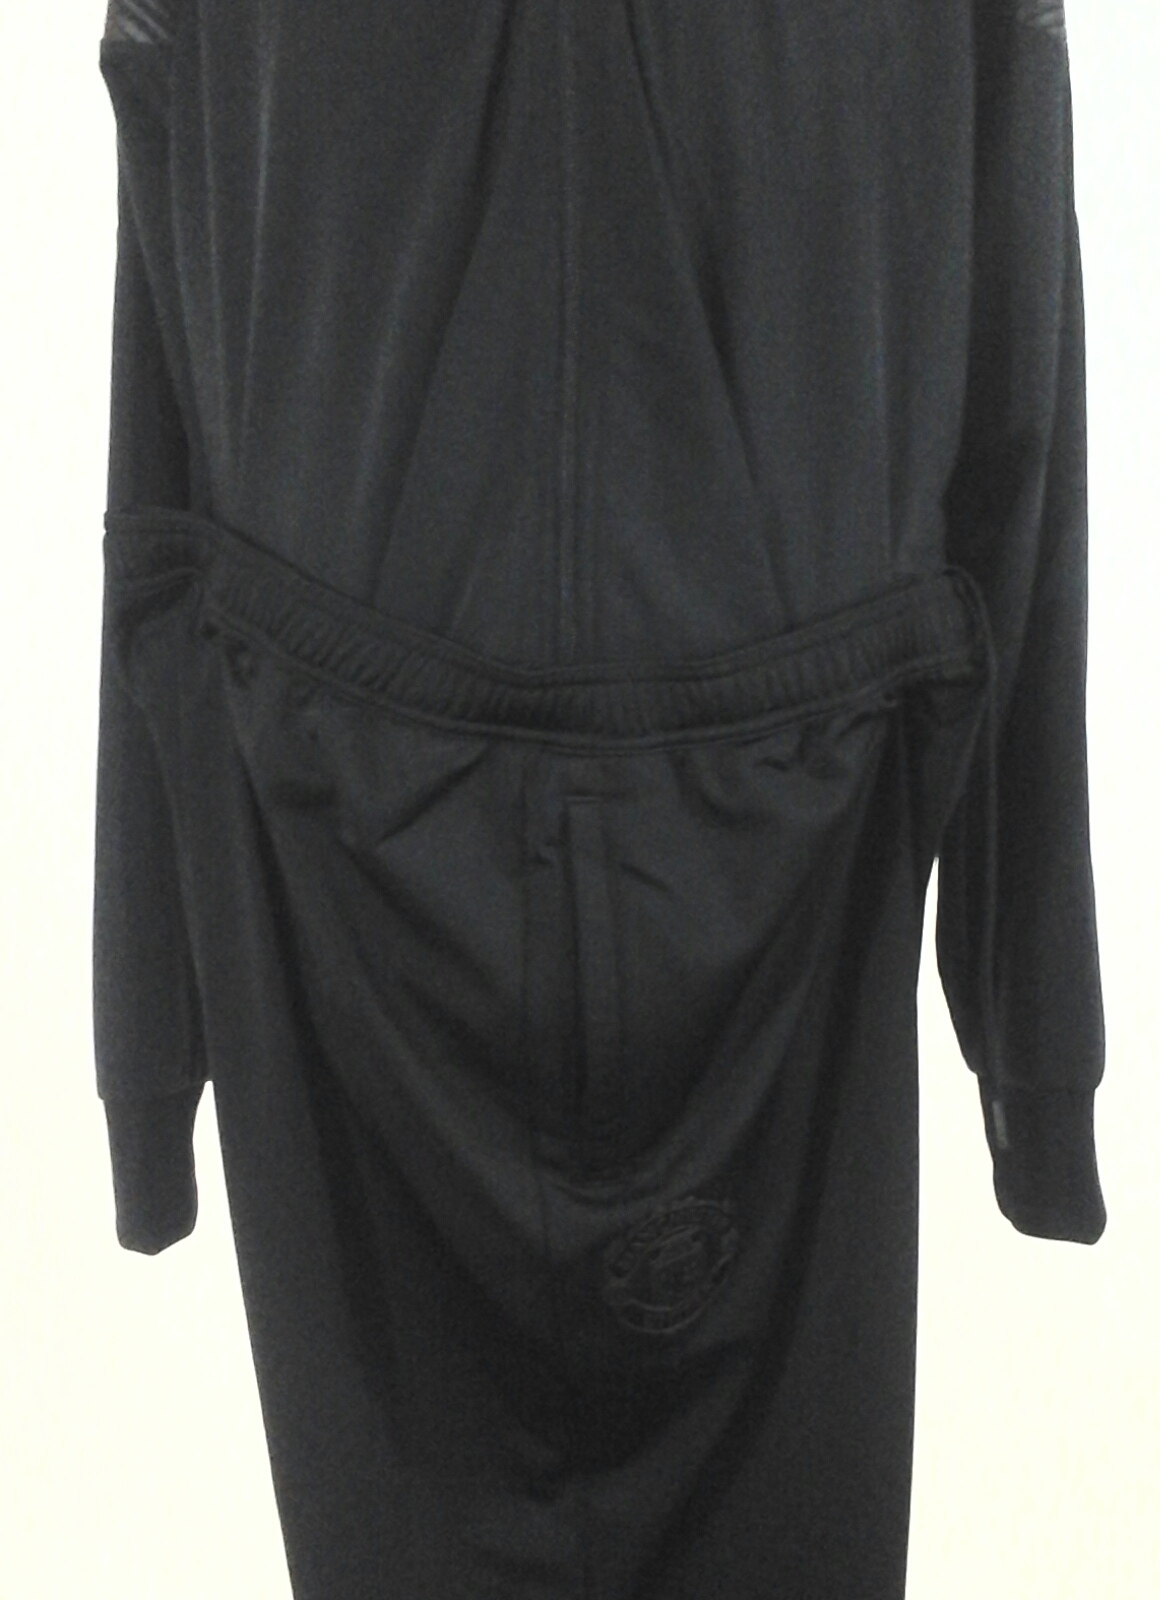 Details About Adidas Track Suit Manchester United Soccer Jacket Cw7653 Pants Icon Mens 2xl New